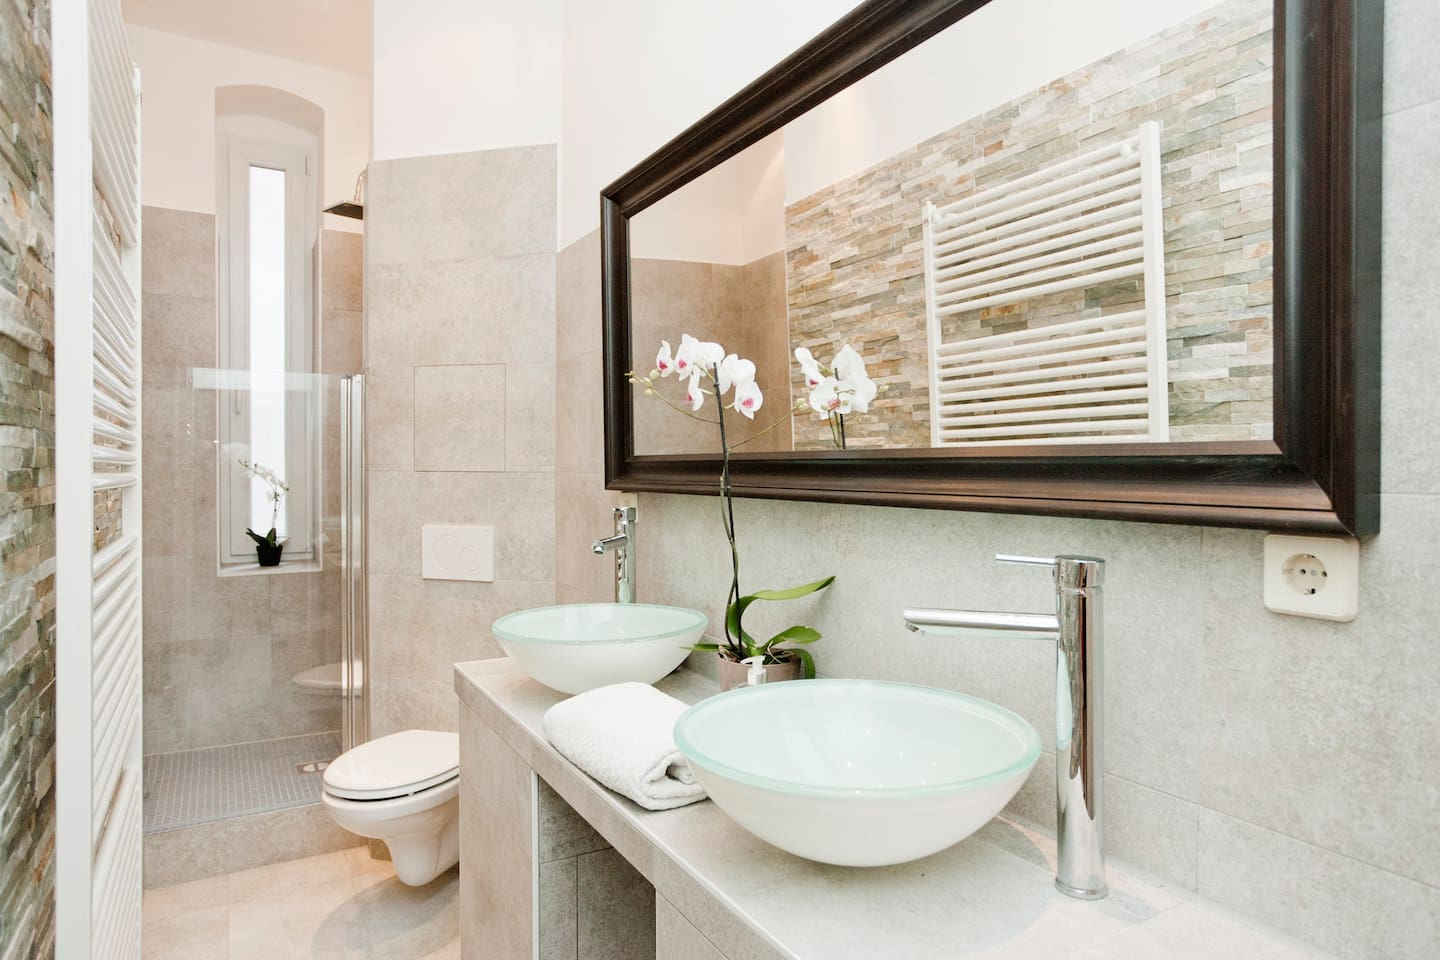 designer bathroom refurbished Dec 2012, 2 sinks, open shower, toilet & towel heater